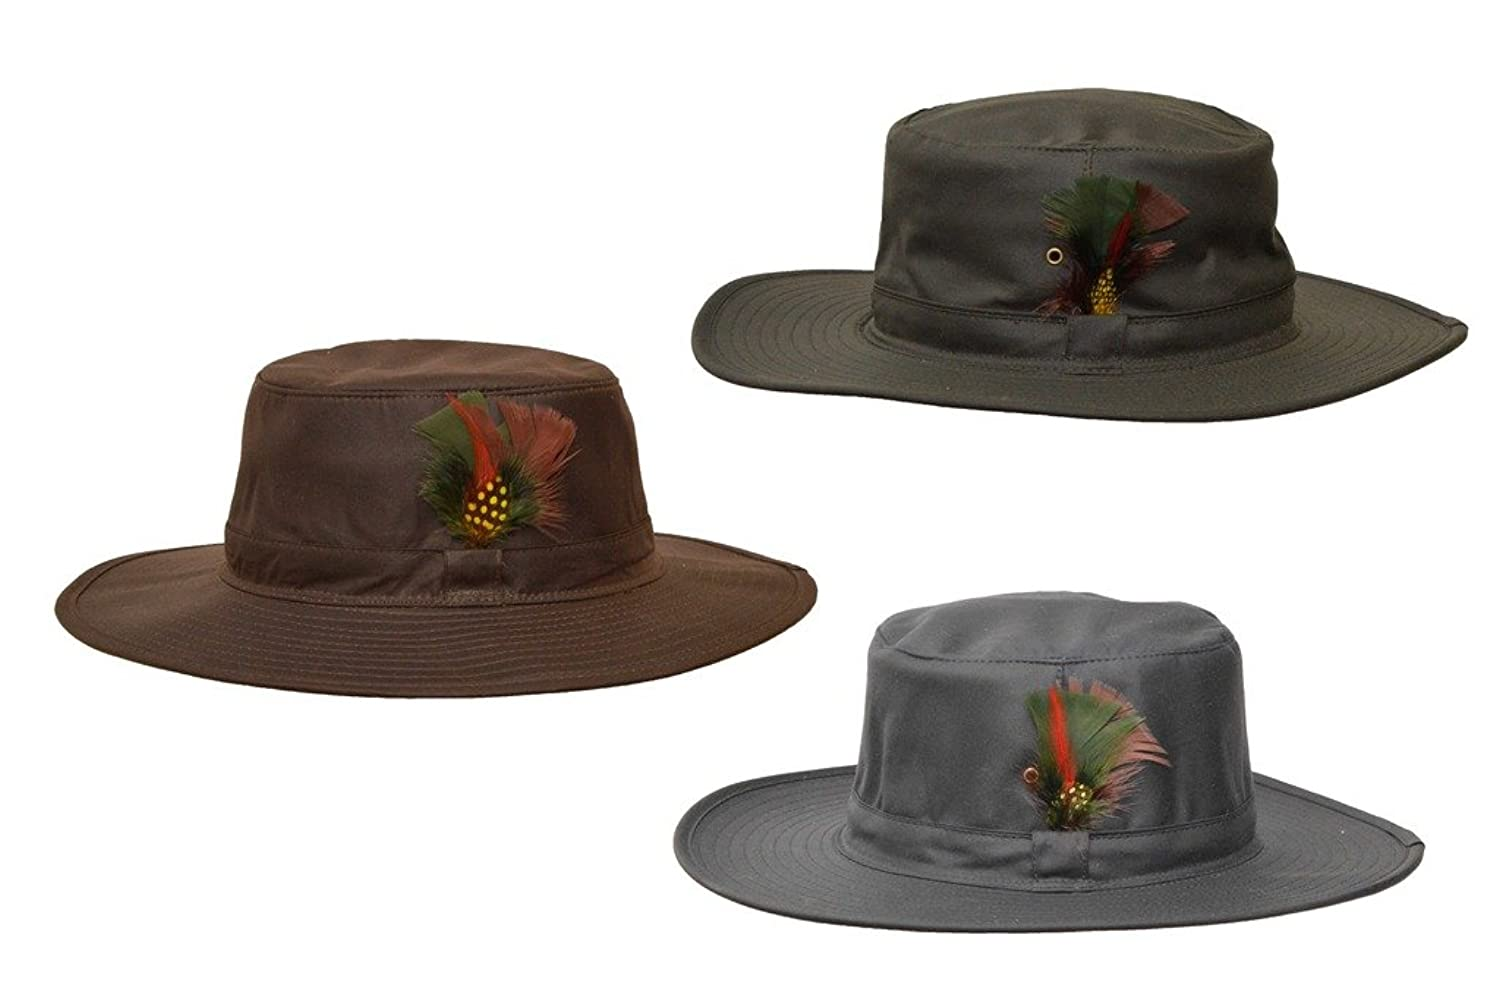 1940s Men's Fashion Clothing Styles Walker and Hawkes Mens Wax Outback Aussie Wide Brim Hat  AT vintagedancer.com